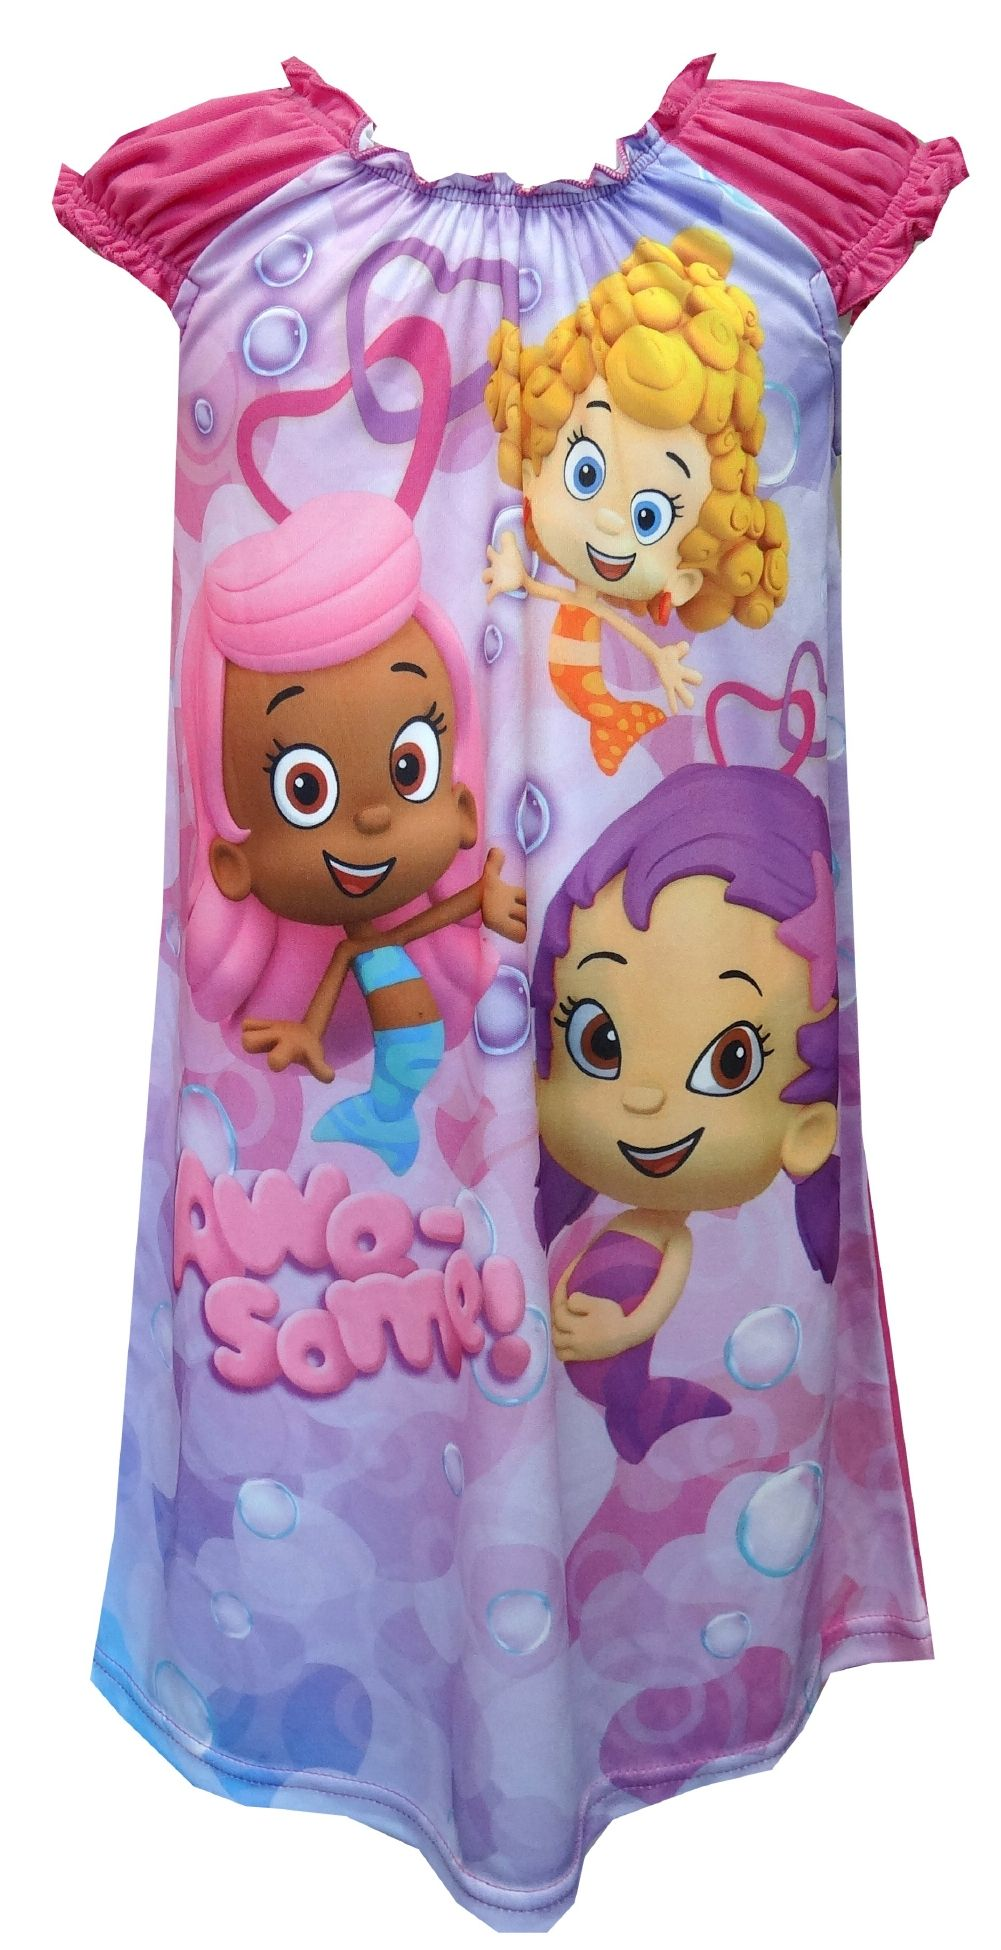 3b89babf8 Nickelodeon Bubble Guppies Pink Toddler Nightgown Time for some fun ...